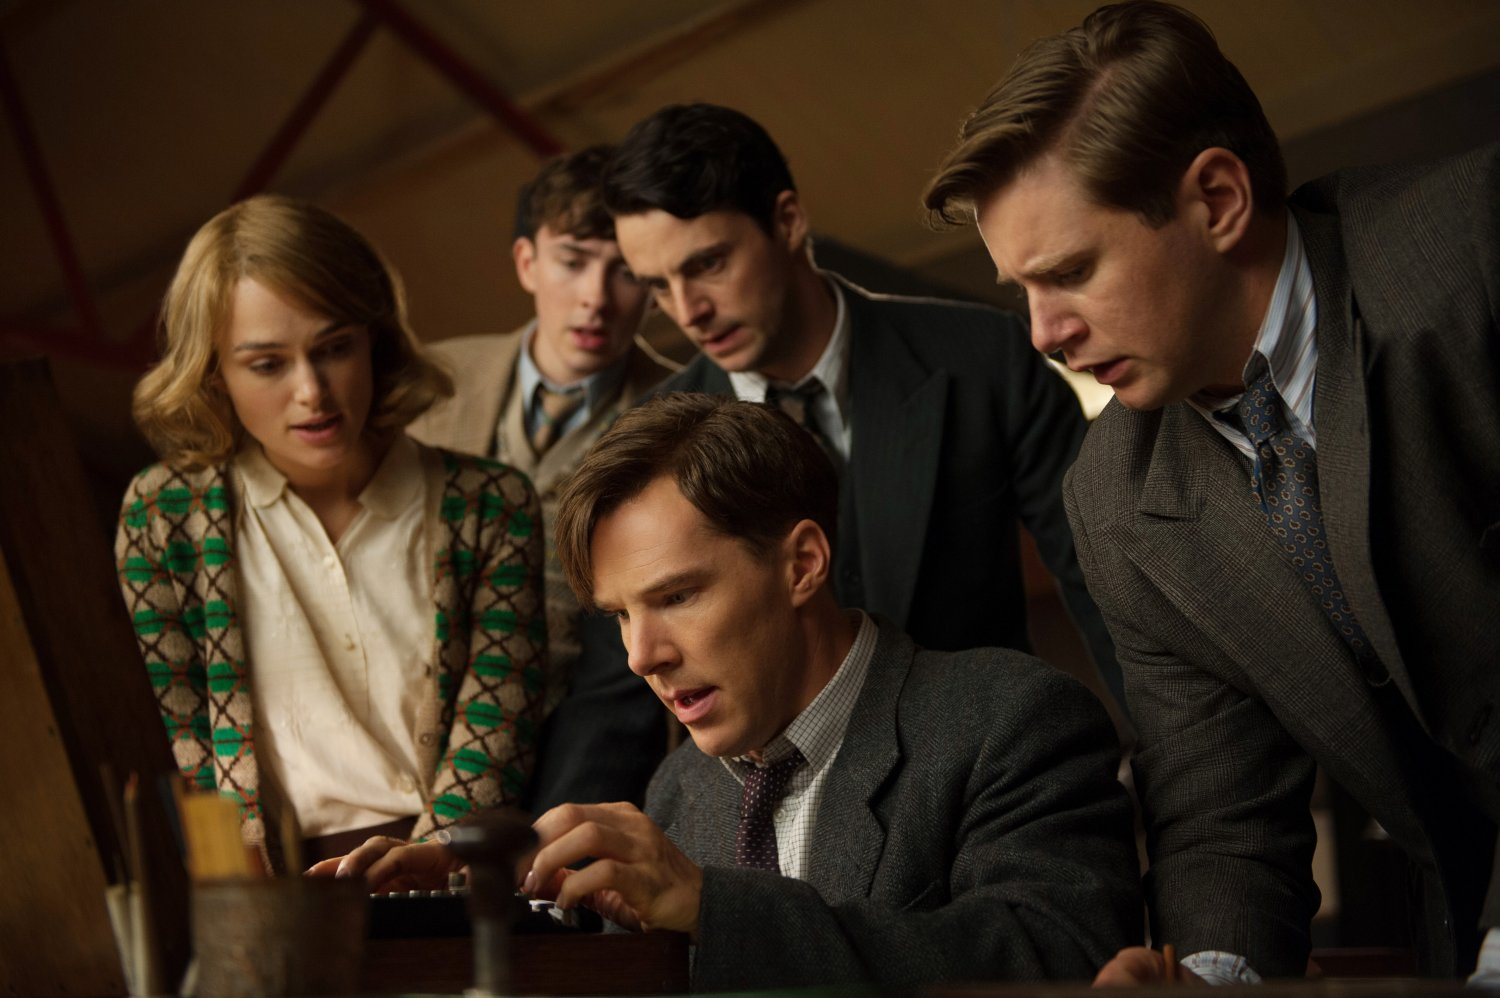 The Imitation Game – First look image